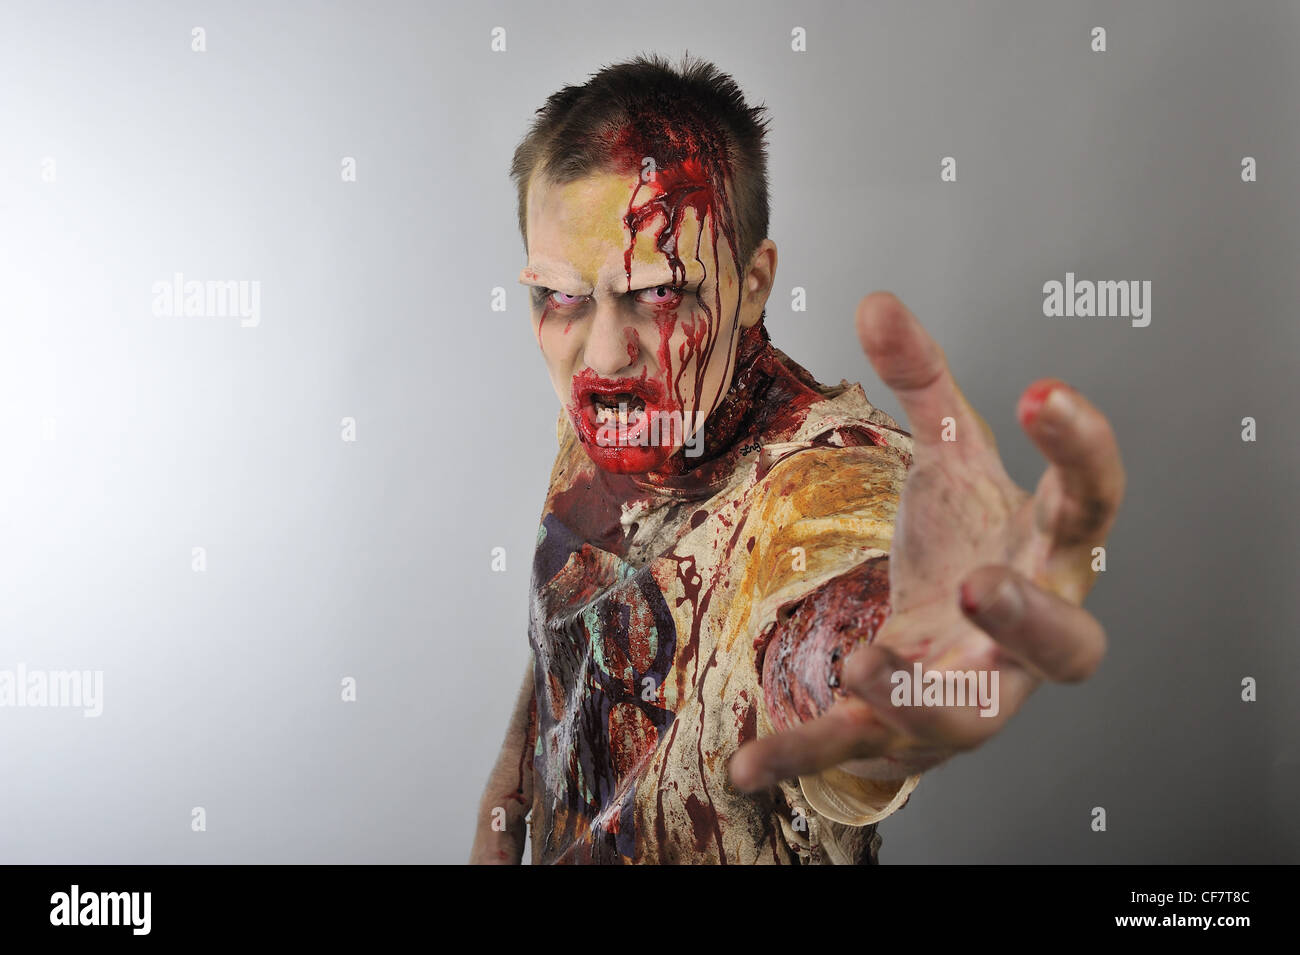 A zombie grab you - Stock Image